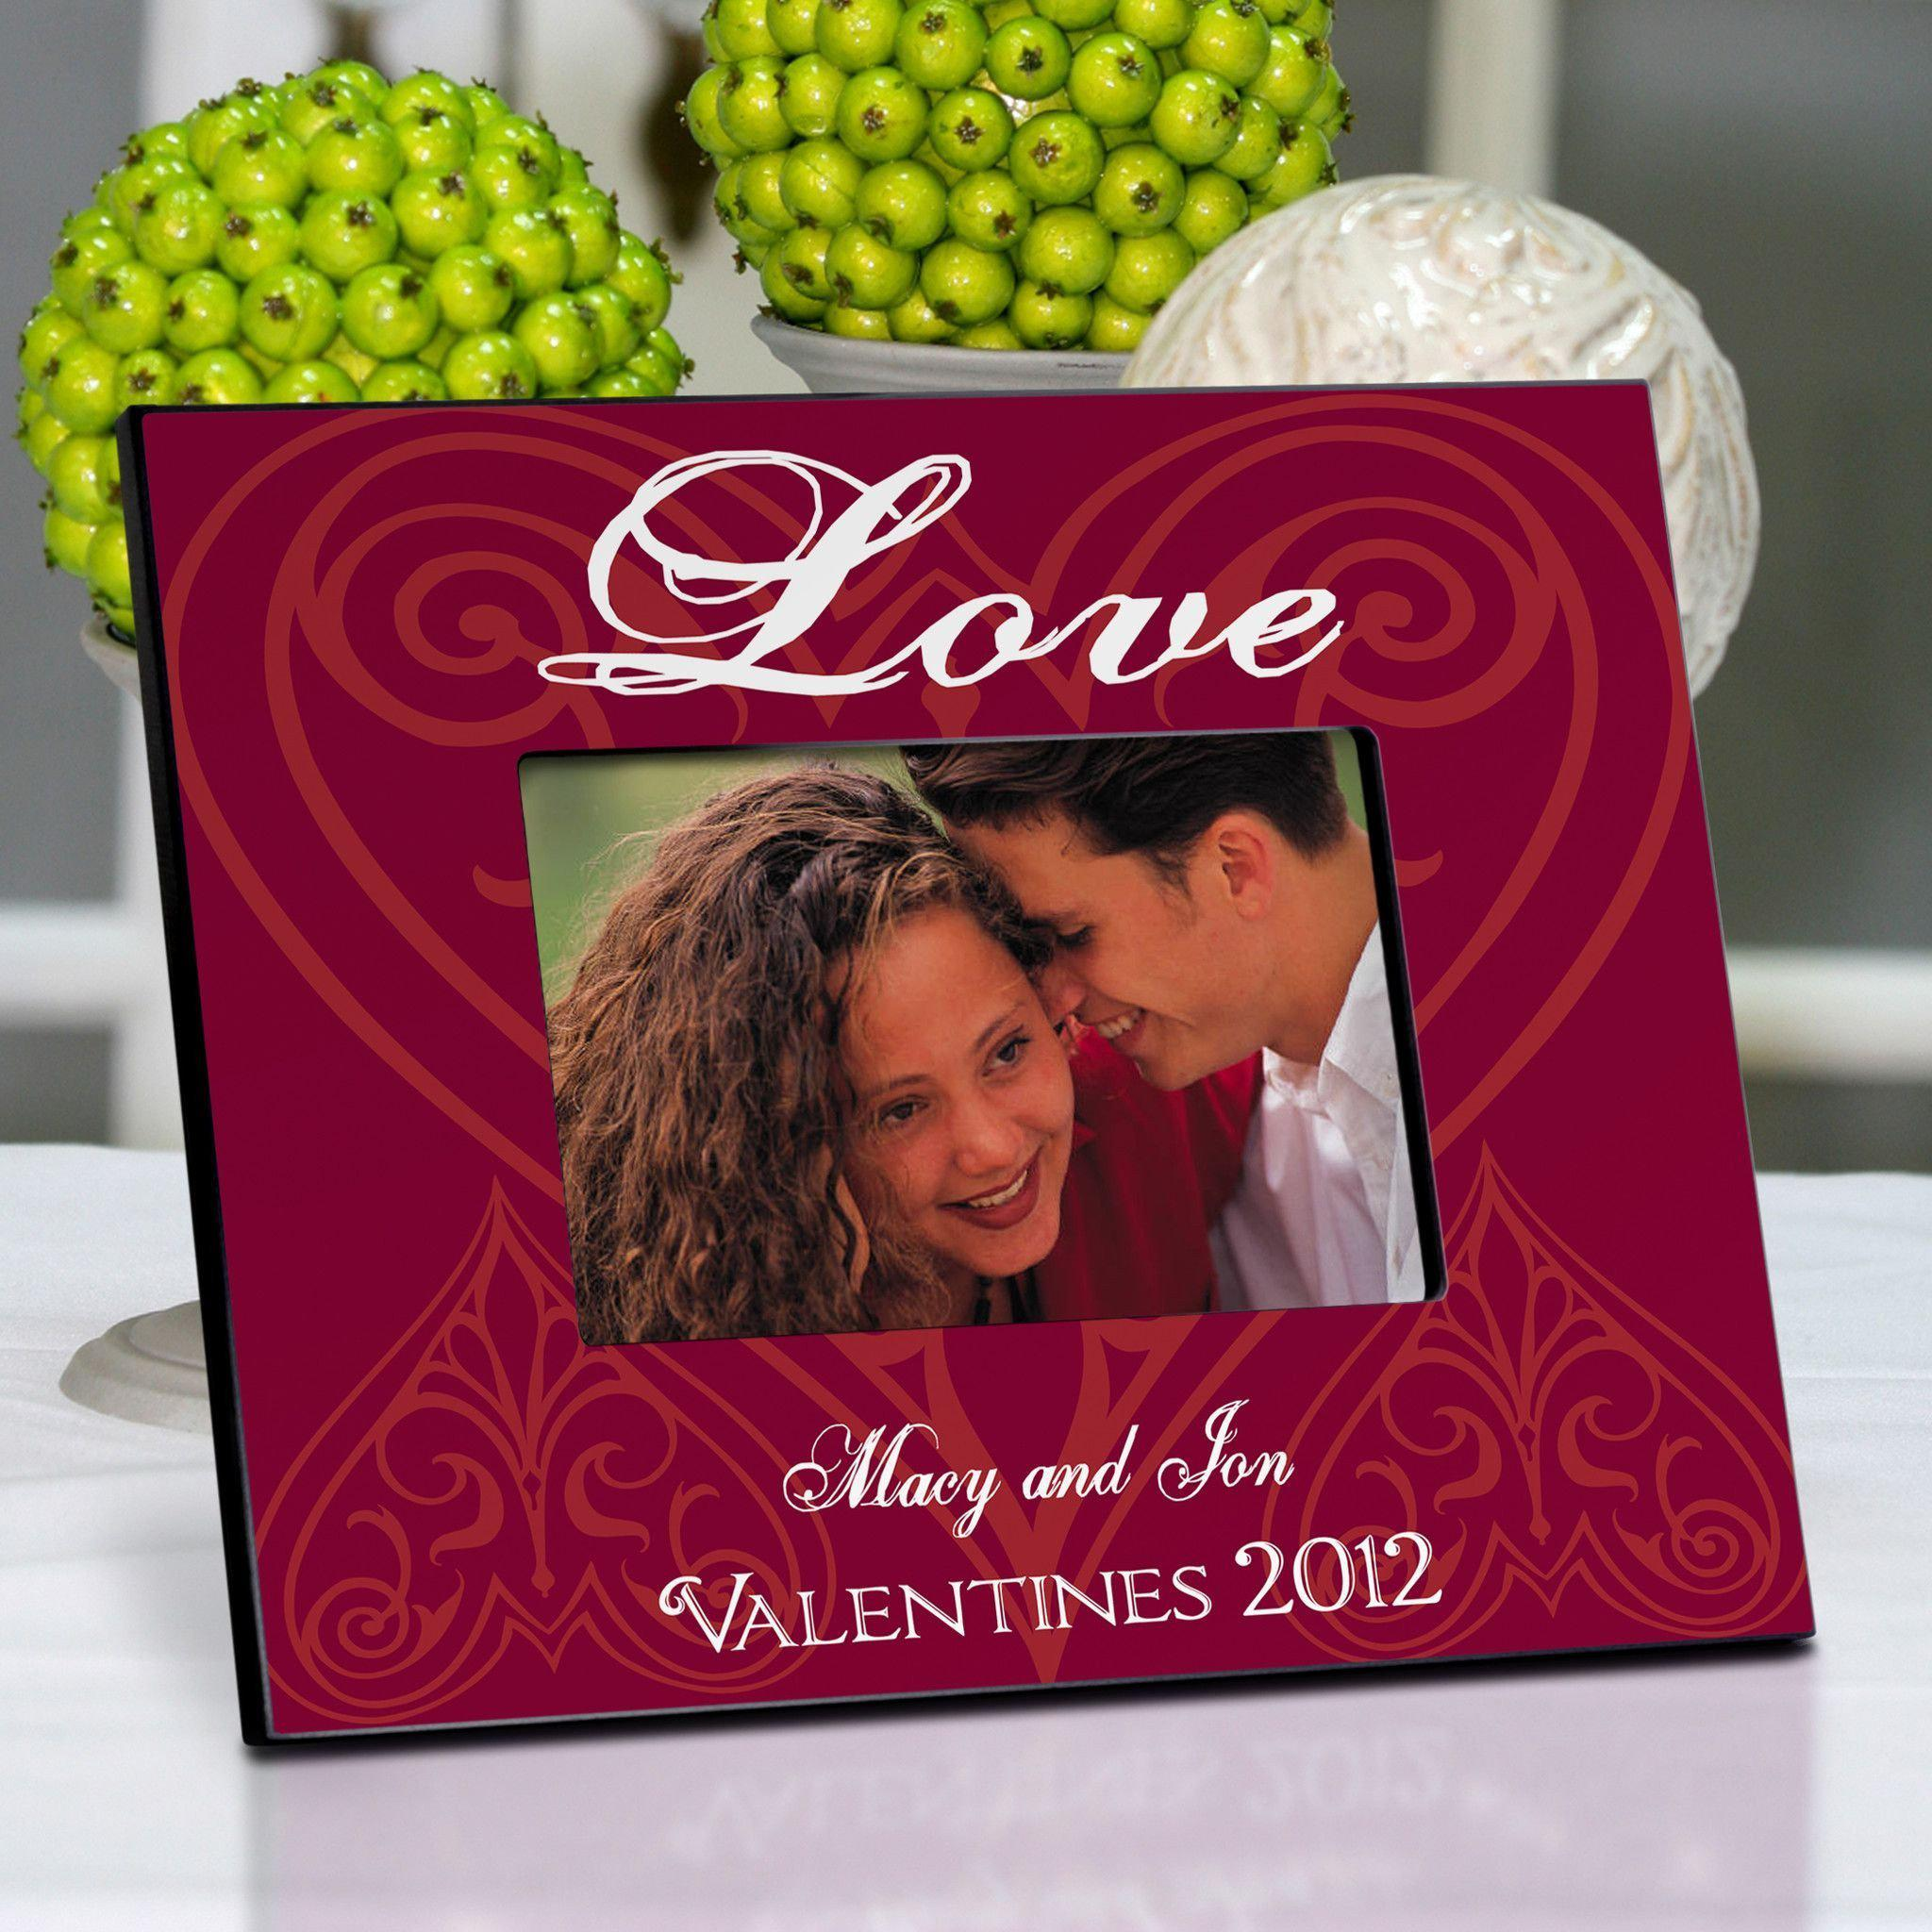 Personalized-Valentines-Day-Date-Frame